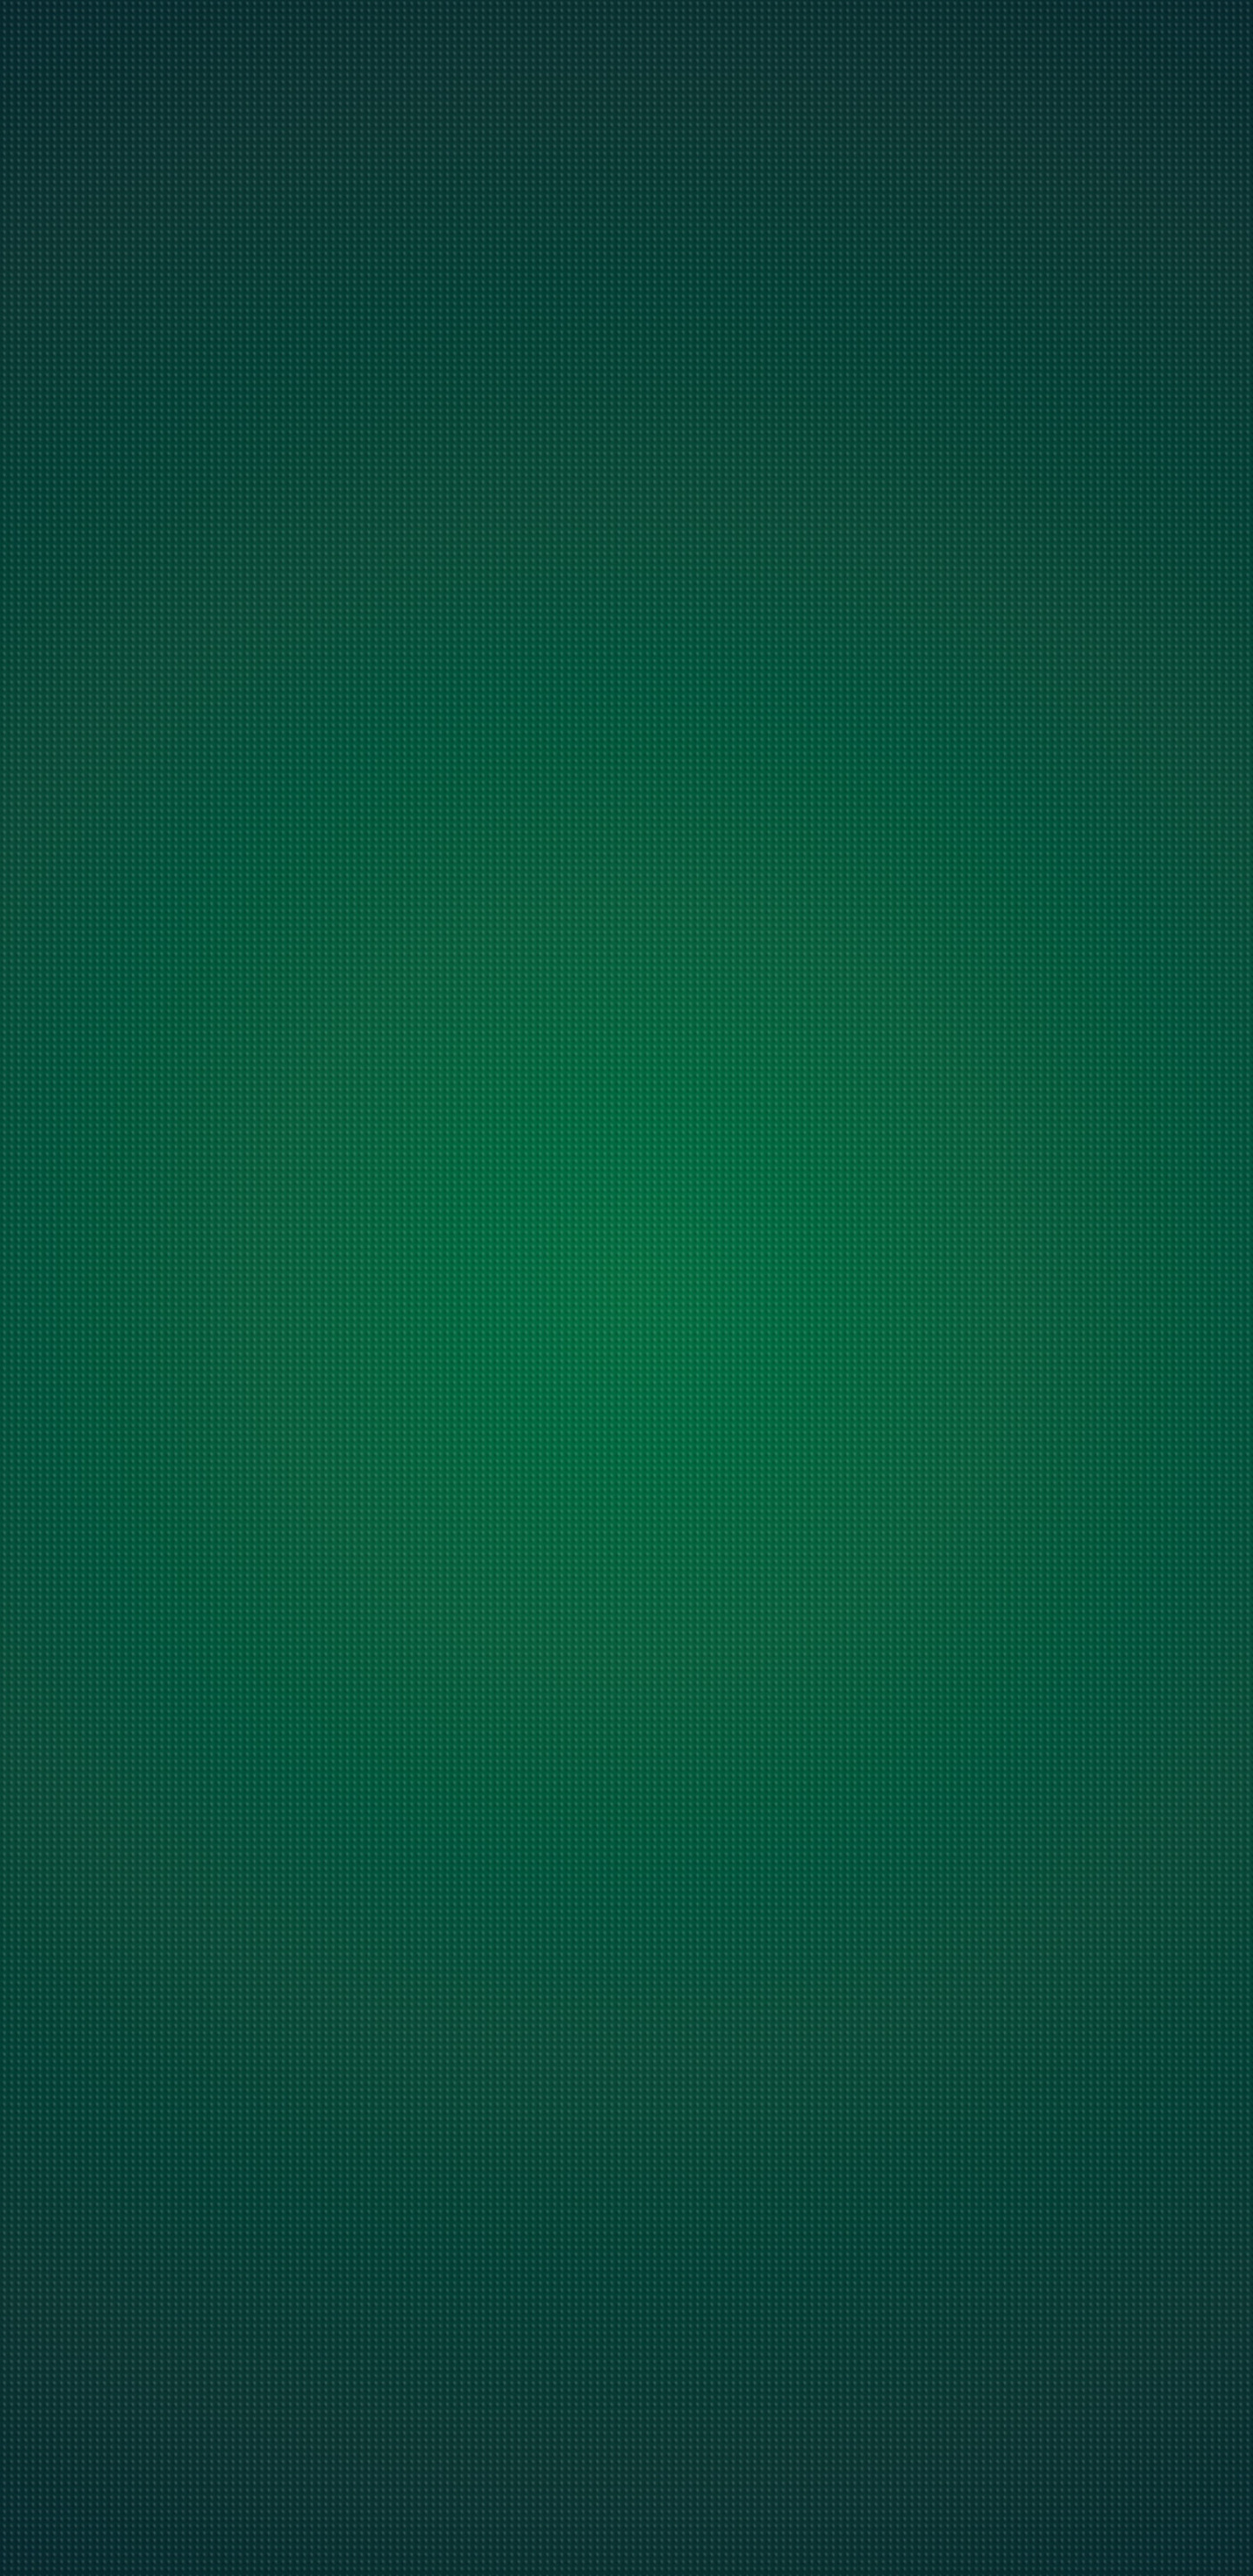 1440x2960 4k Green Abstract Samsung Galaxy Note 98 S9s8